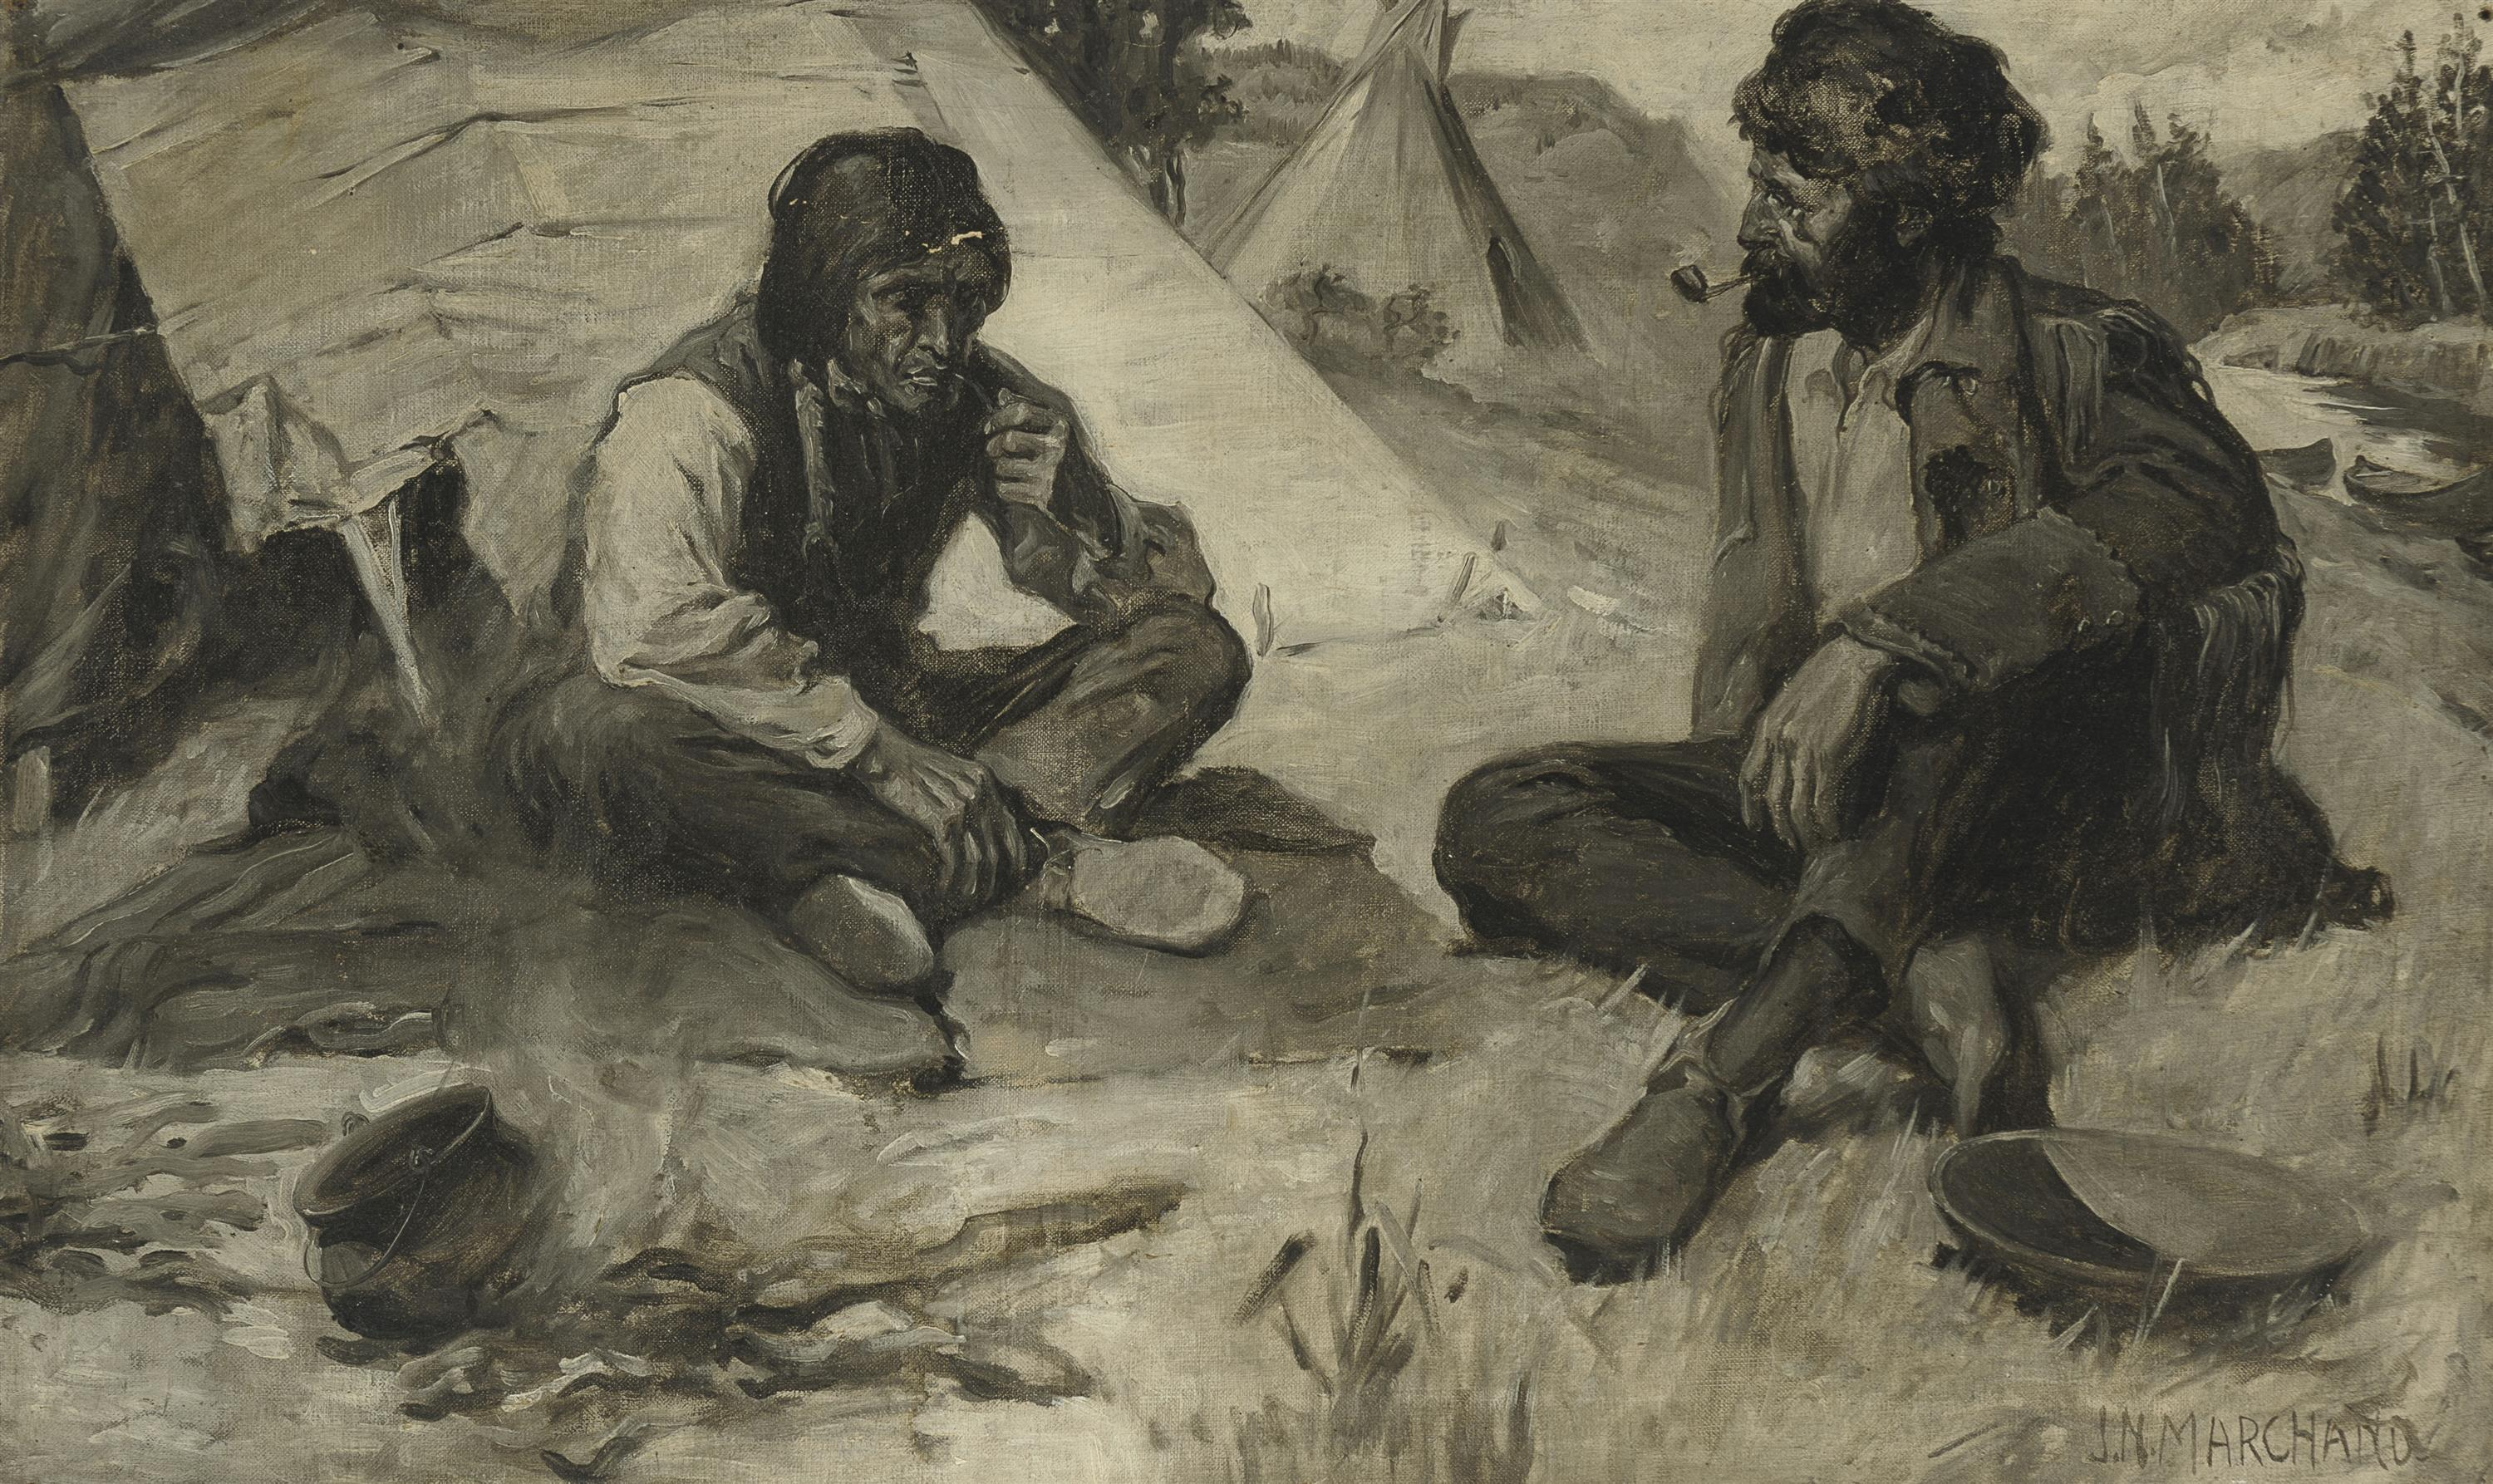 """John N. Marchand, (1875-1921 Westport, CT), American Indian and frontiersman seated by a fire, Oil en griselle on canvas, 19"""" H x 31"""" W"""